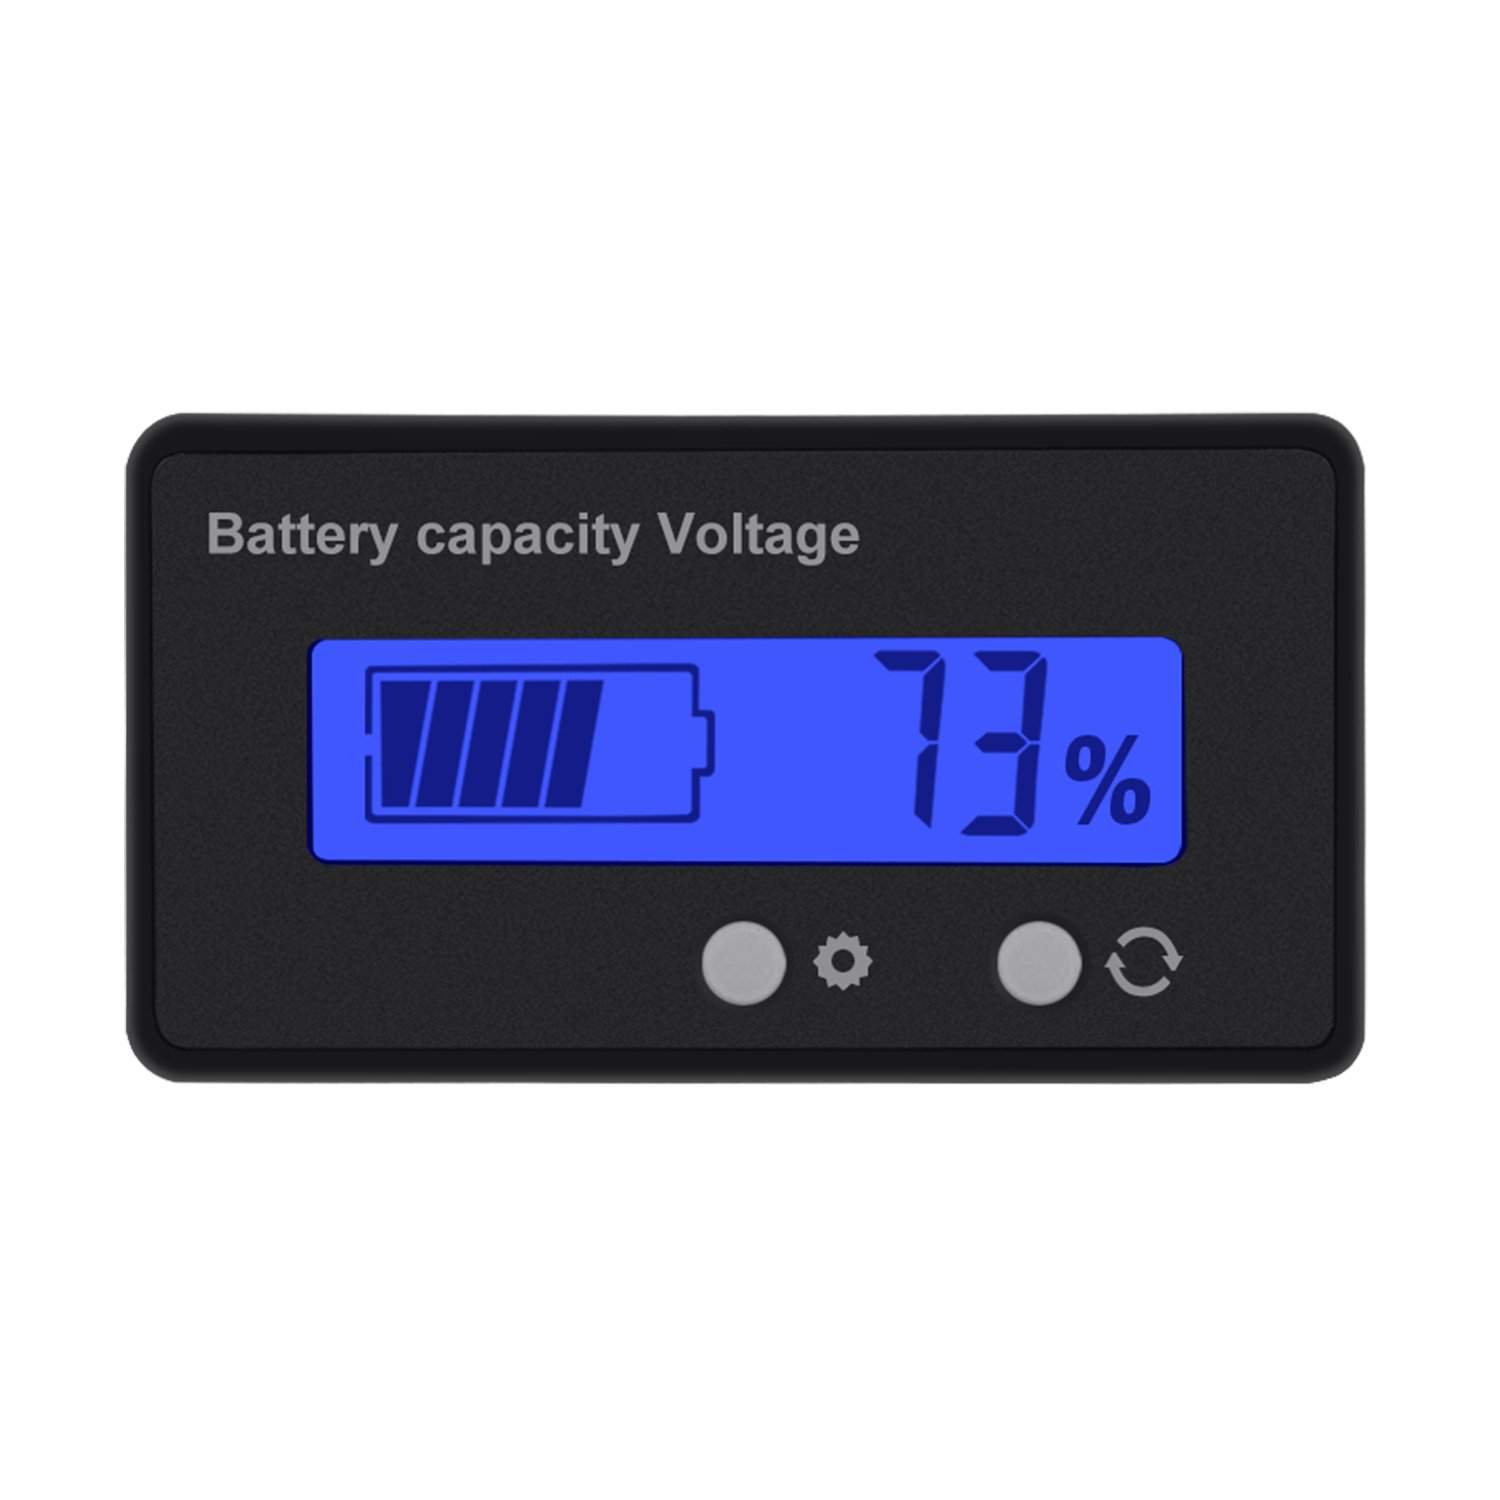 Konesky LCD Battery Capacity Monitor Gauge Meter, Lead Acid Battery Tester Lithium Battery Capacity Indicator Voltmeter for 12V/24V/36V/48V (Greenbacklight)